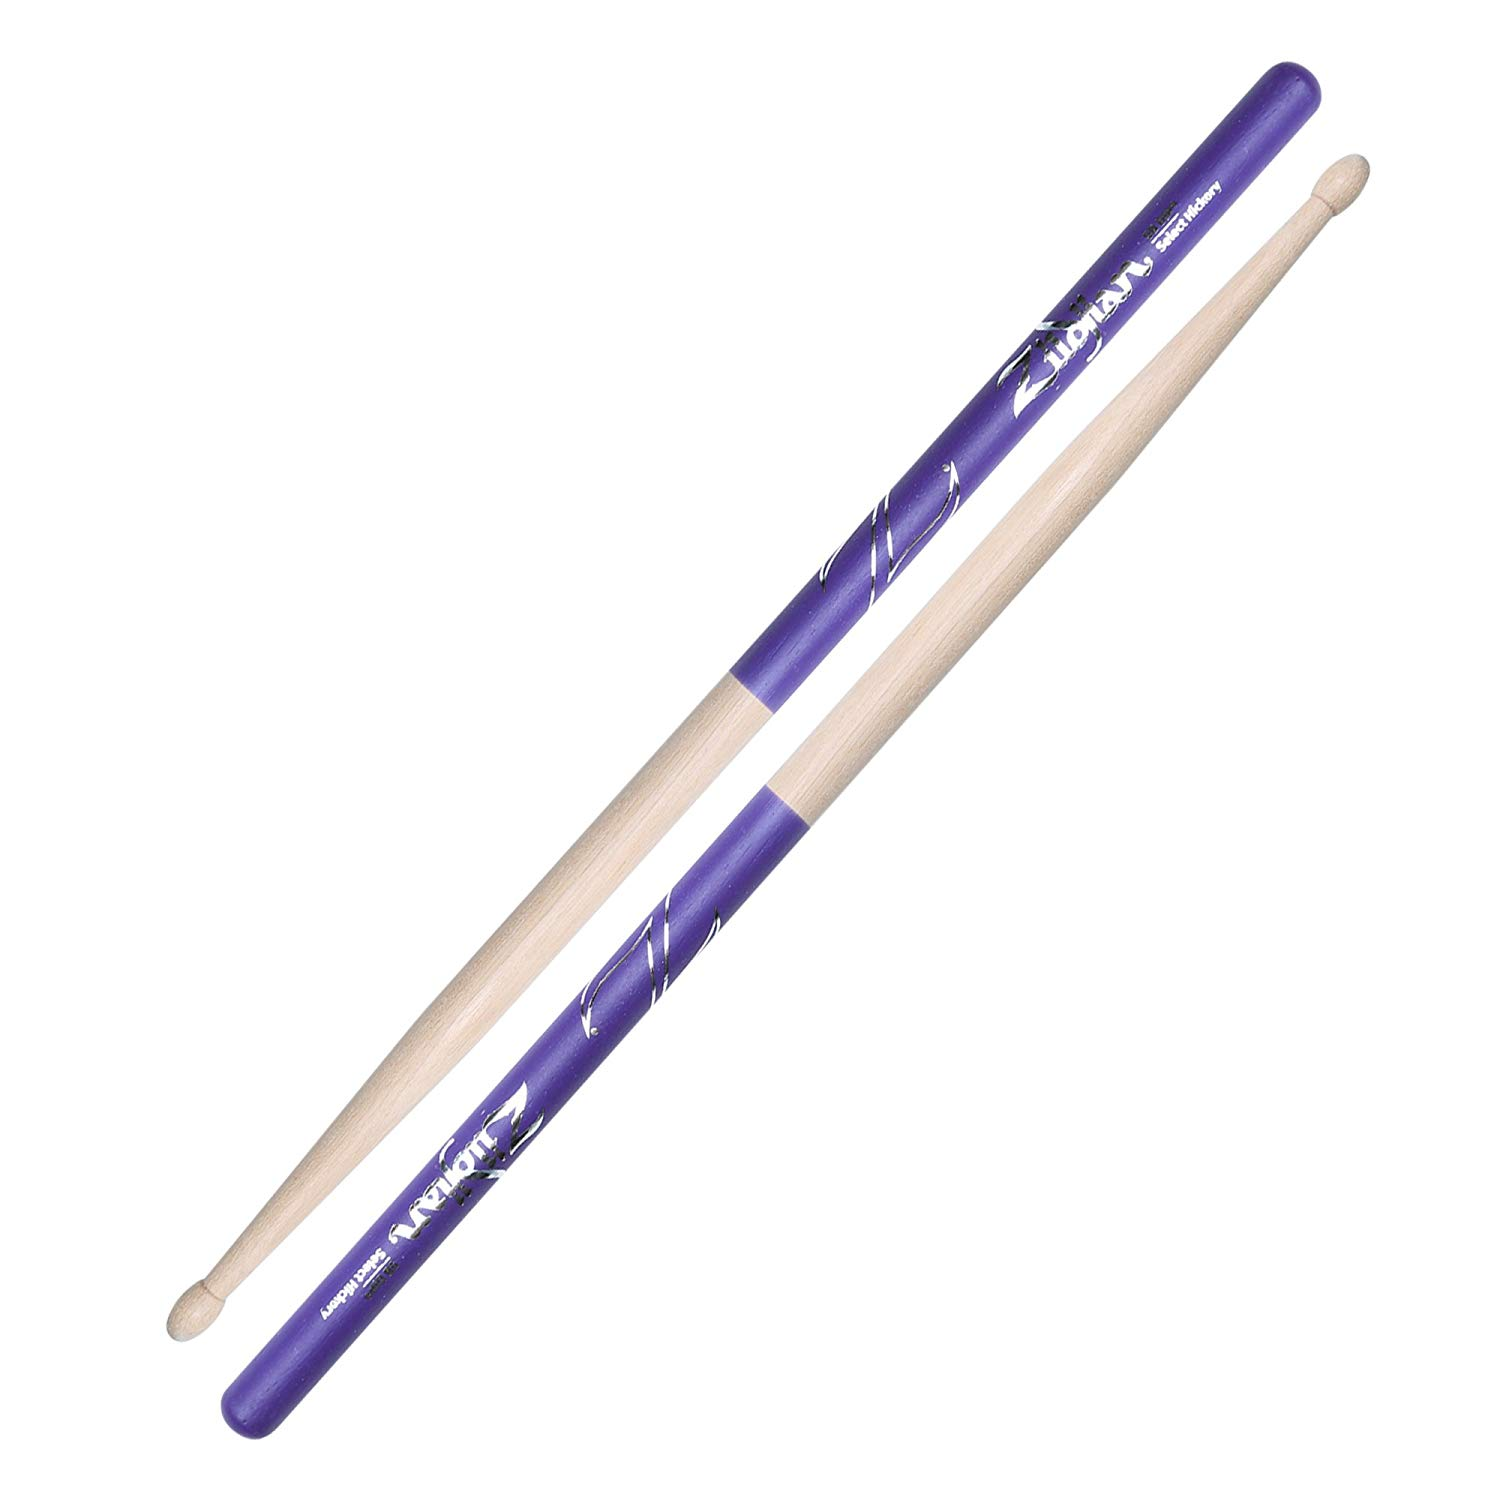 Zildjian 5B Purple Dip Drumsticks